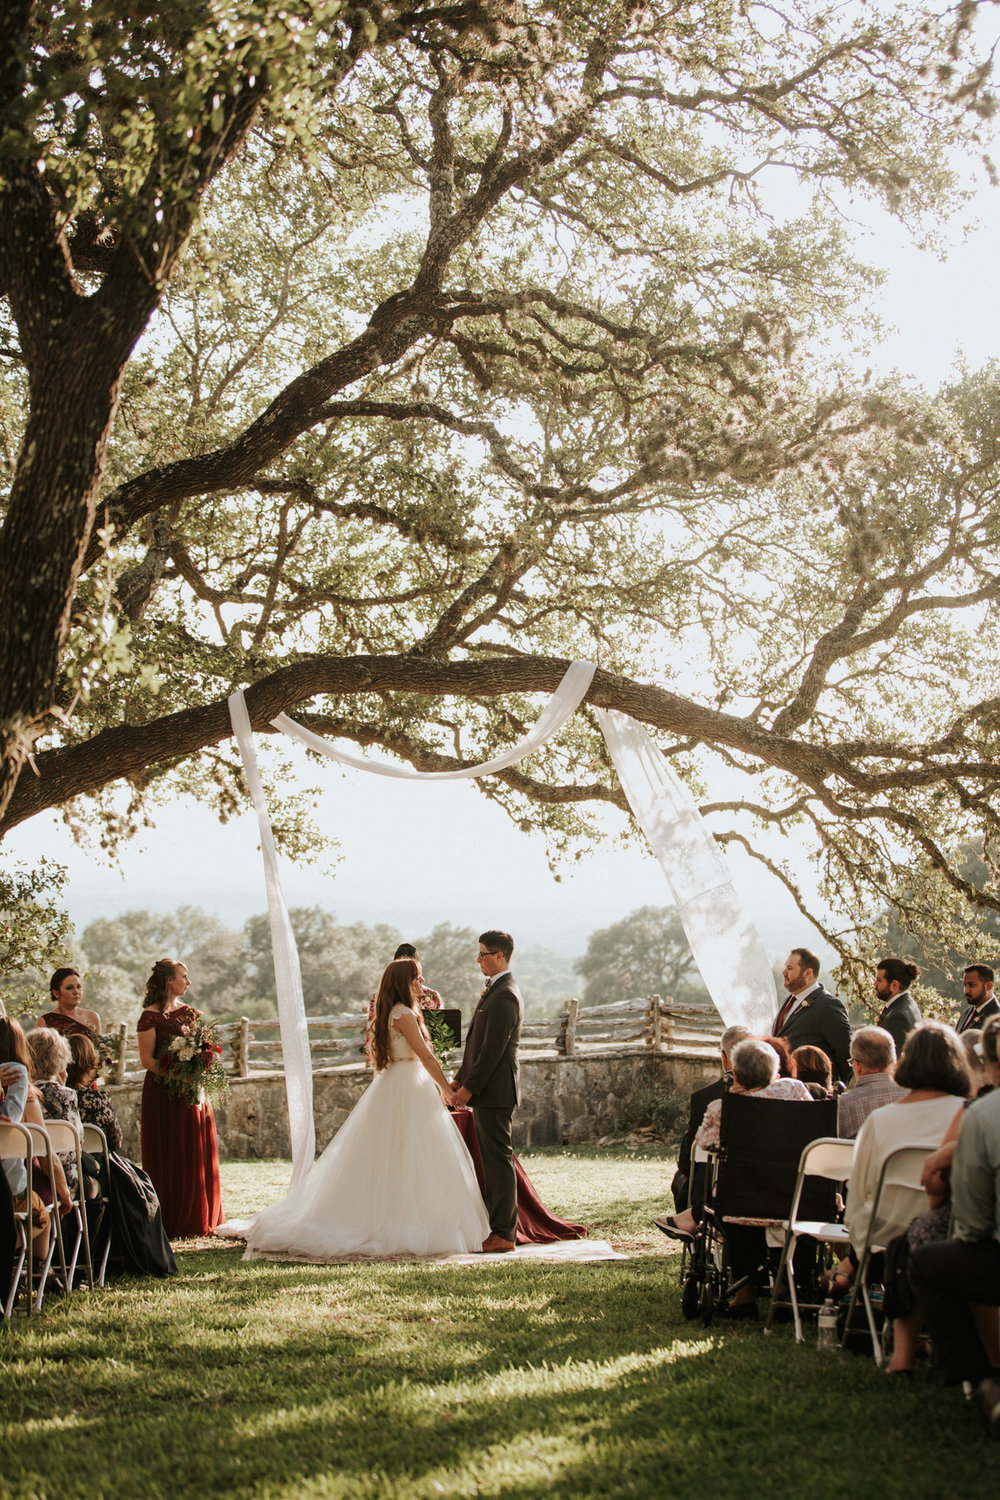 Inspiration Oaks Ranch, Inspiration Oaks Ranch Wedding Photography, Inspiration Oaks Ranch Wedding Photographer, Austin Wedding Venue, Texas Wedding Photographer, Texas Wedding Photography, Austin Wedding Photographer